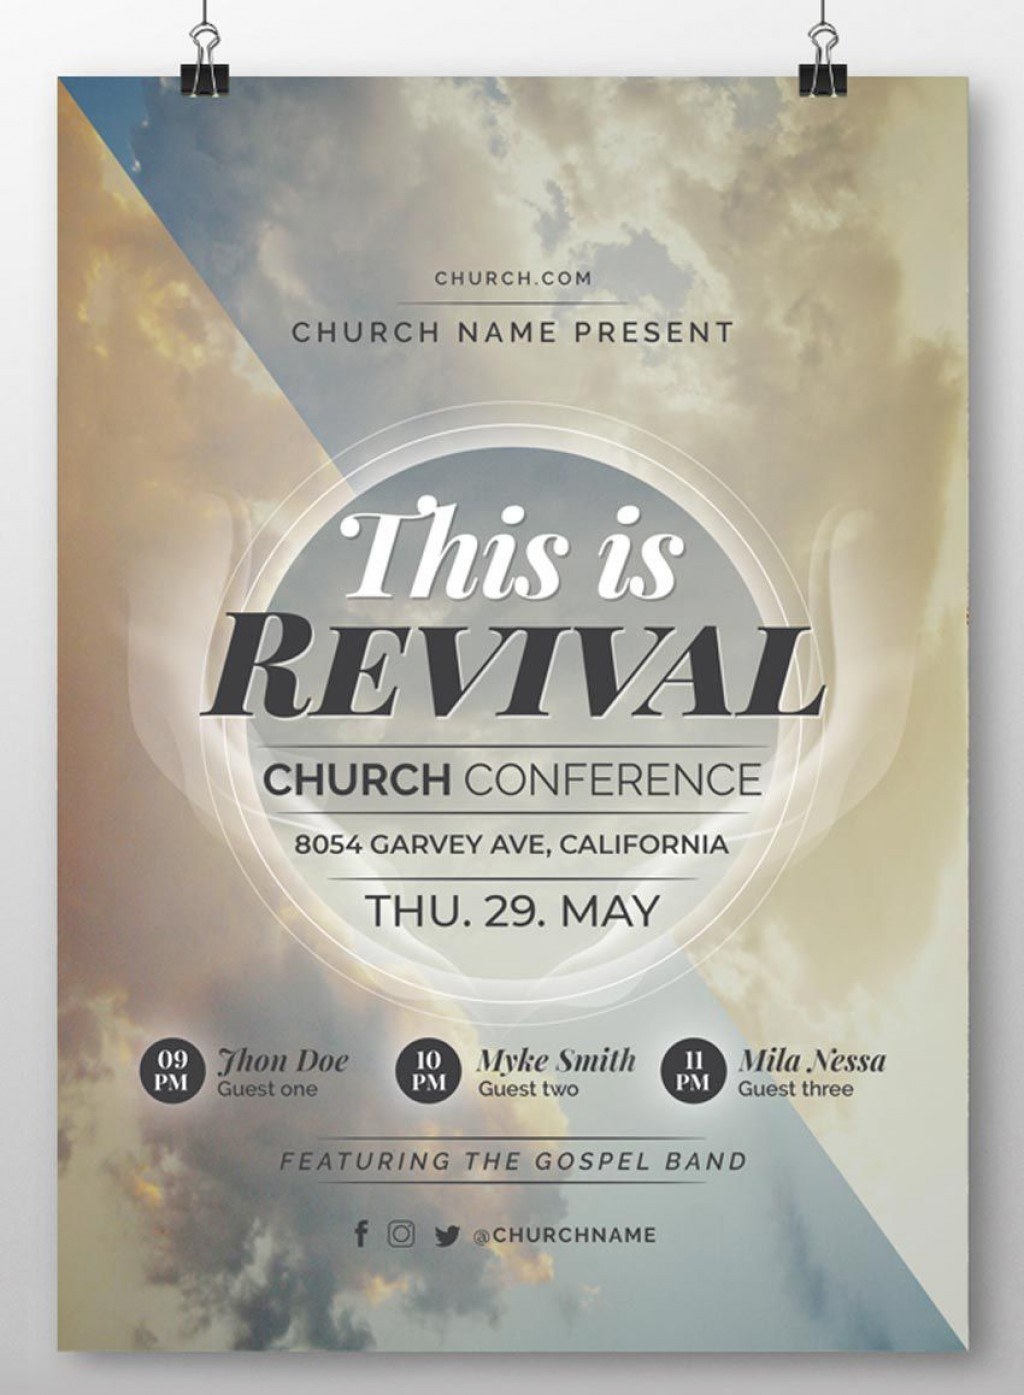 005 Unbelievable Church Flyer Template Free Download Design  Event PsdLarge